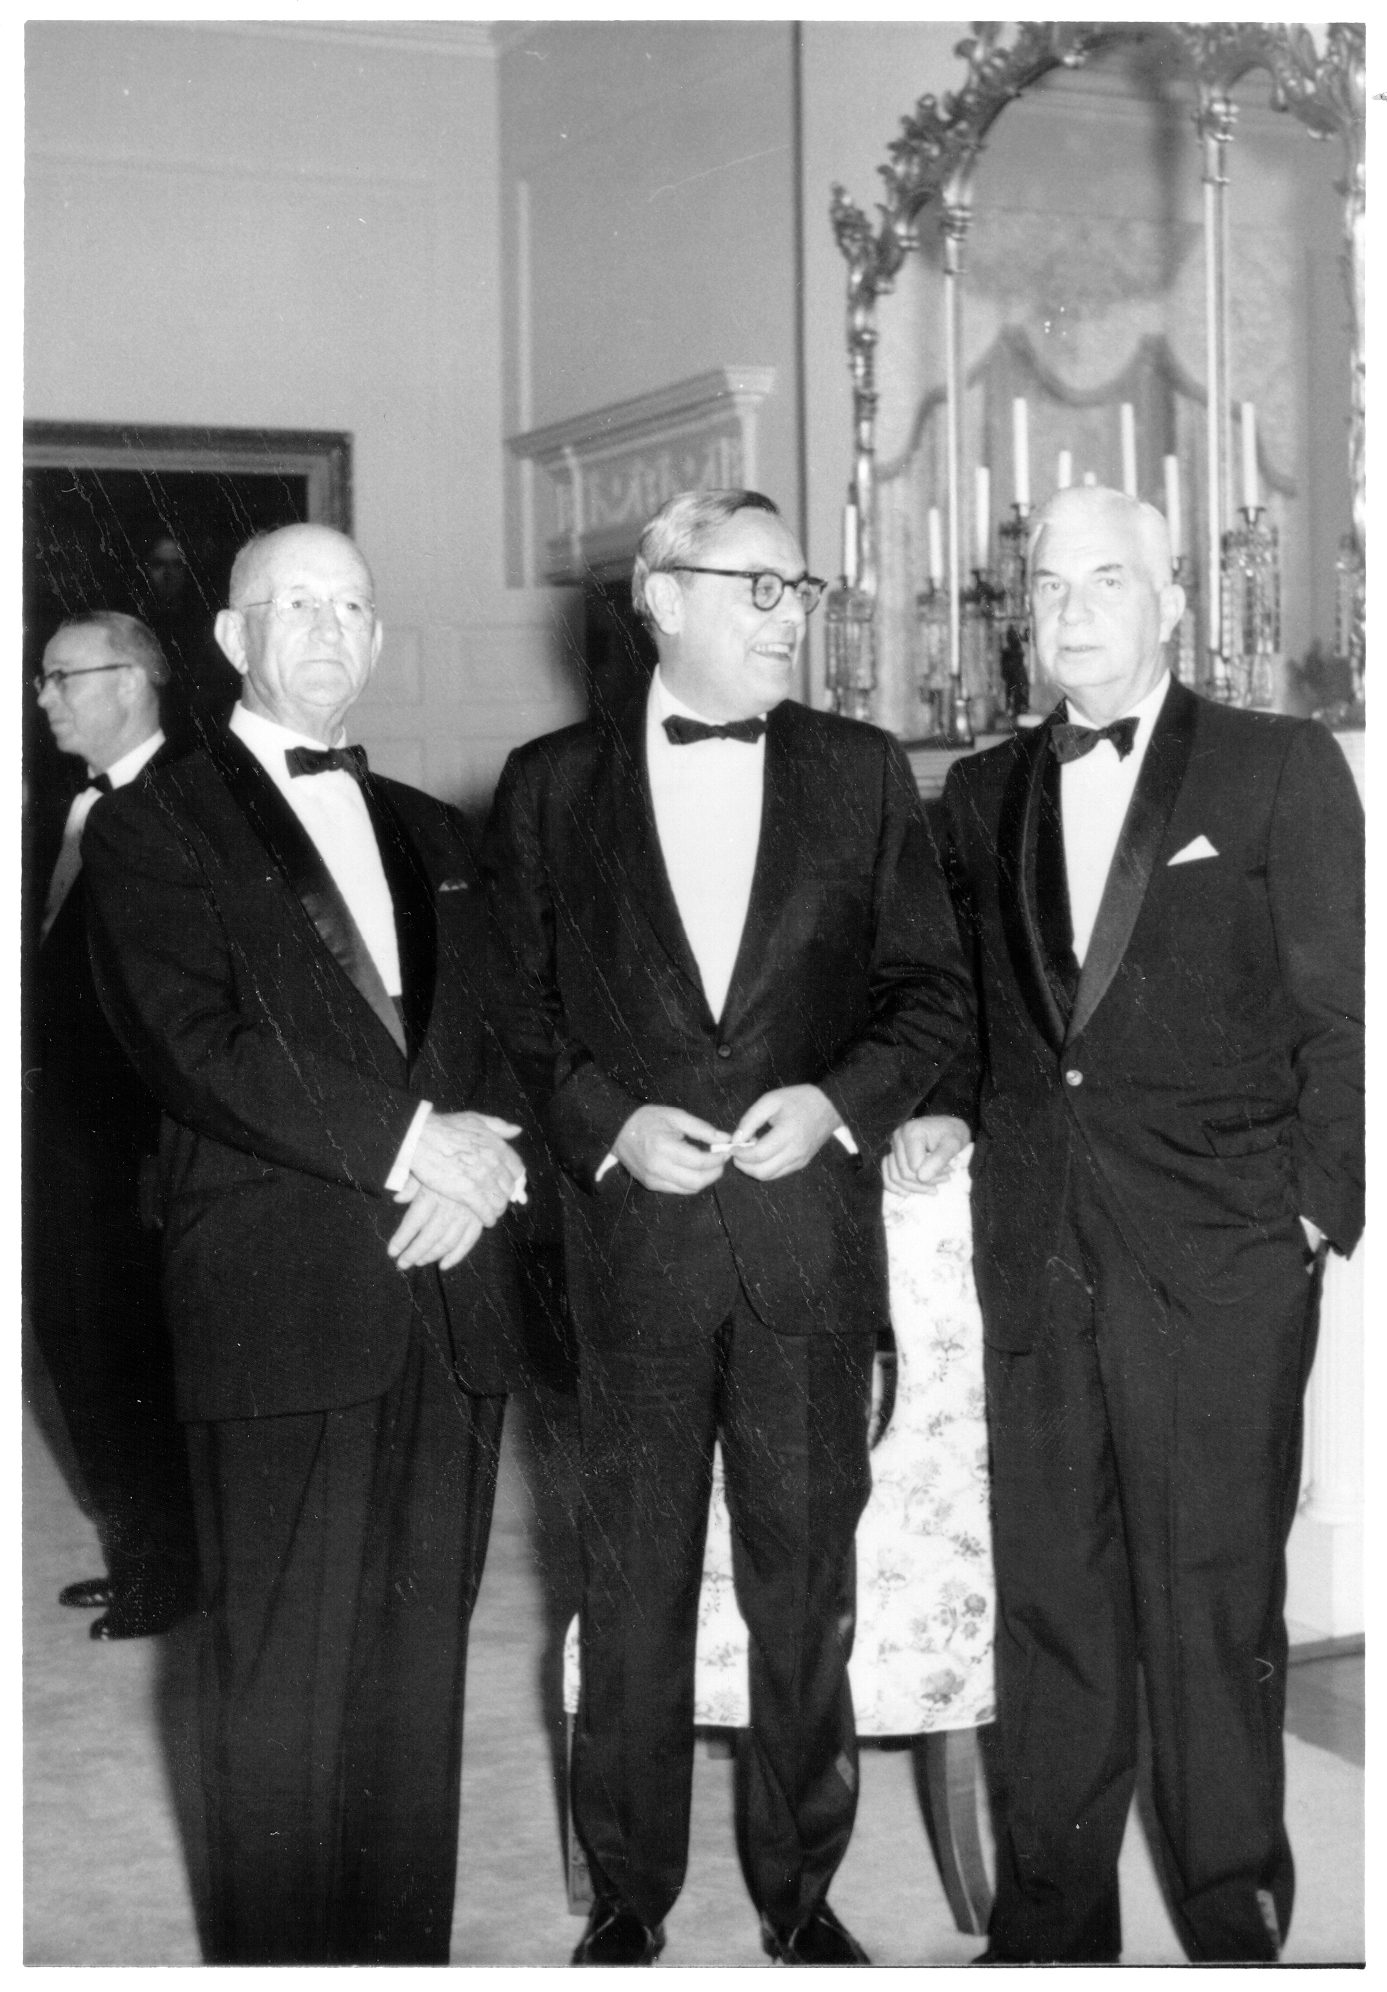 Retirement dinner guests: Justice Archibald C. Buchanan, Lieutenant Governor Fred G. Pollard, and Justice Albertis S. Harrison, 1969. Photograph courtesy of Dr. A. C. Buchanan and Tazewell County Public Library.